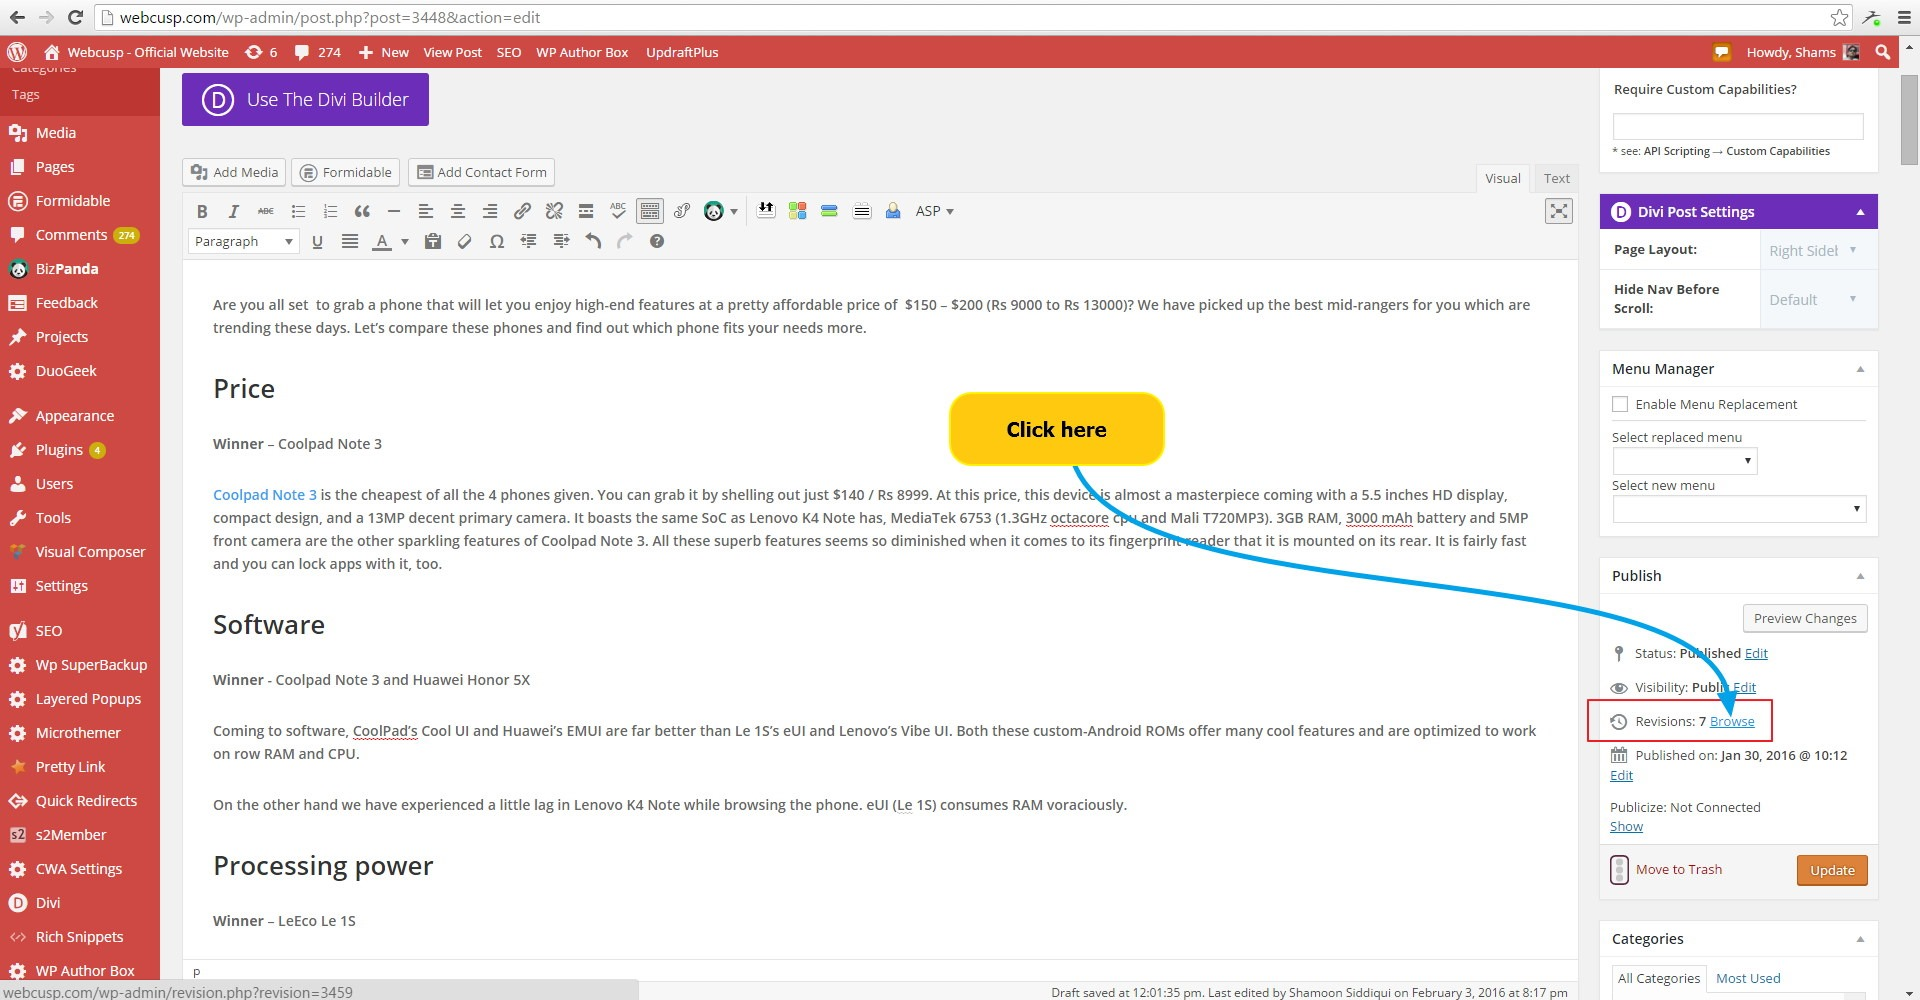 WordPress Revisions Tutorial - Browse Revisions